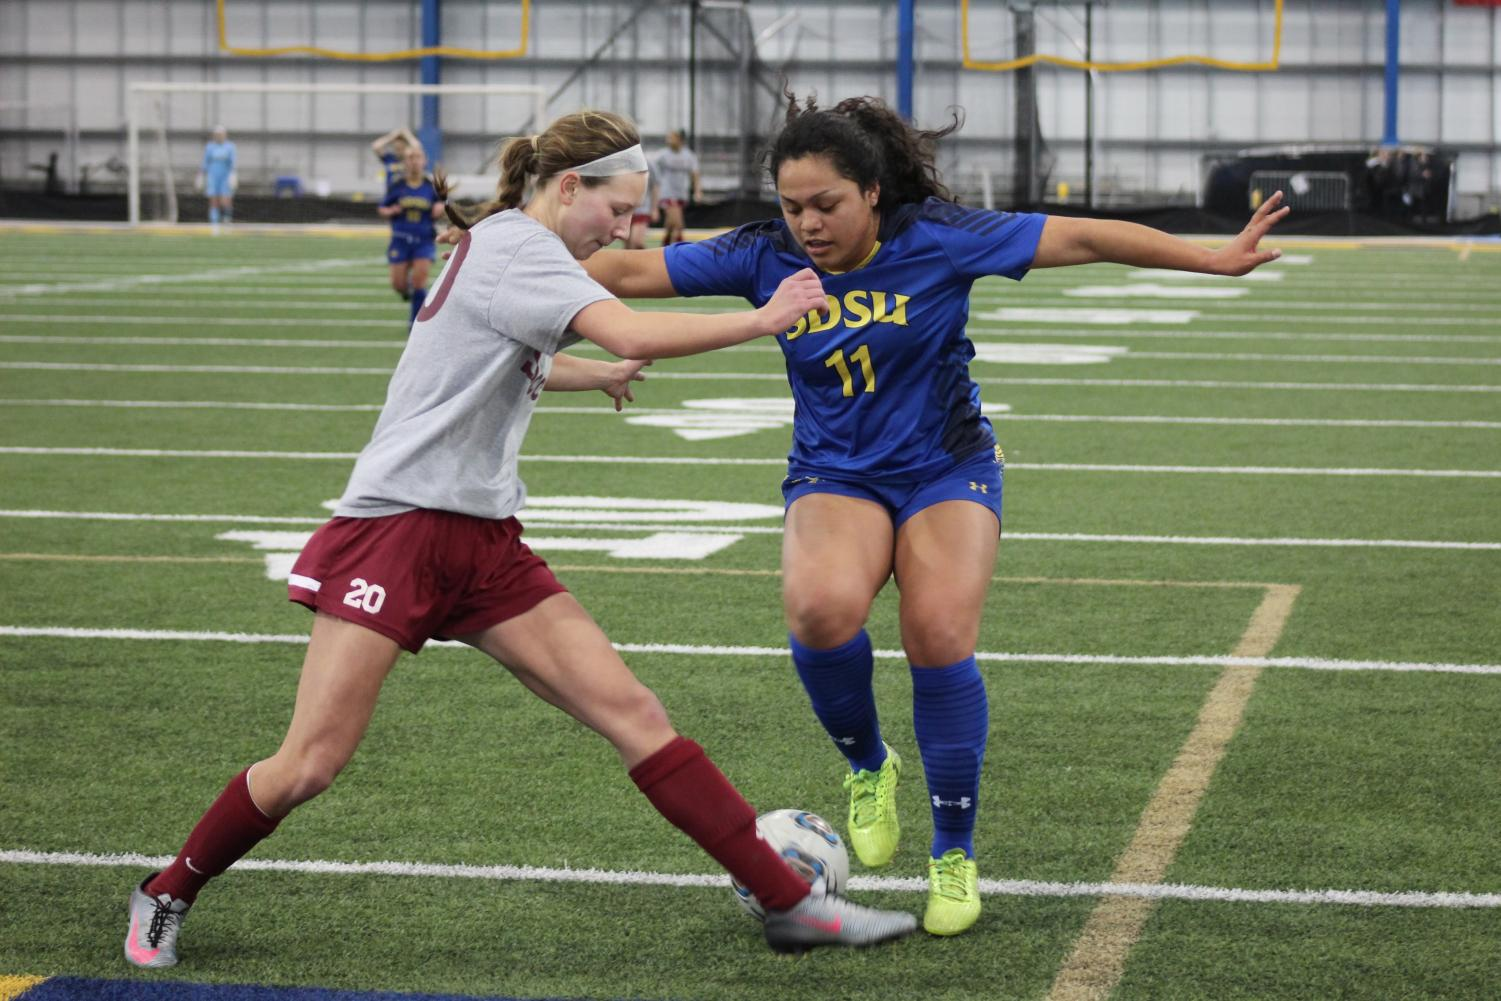 Senior forward Leah Manuleleua (11) dribbles past a defender in the Sanford Jackrabbit Athletic Complex. Manuleleua scored her first two goals of the season against Idaho State Sunday, Aug. 25, at Fishback Soccer Park.